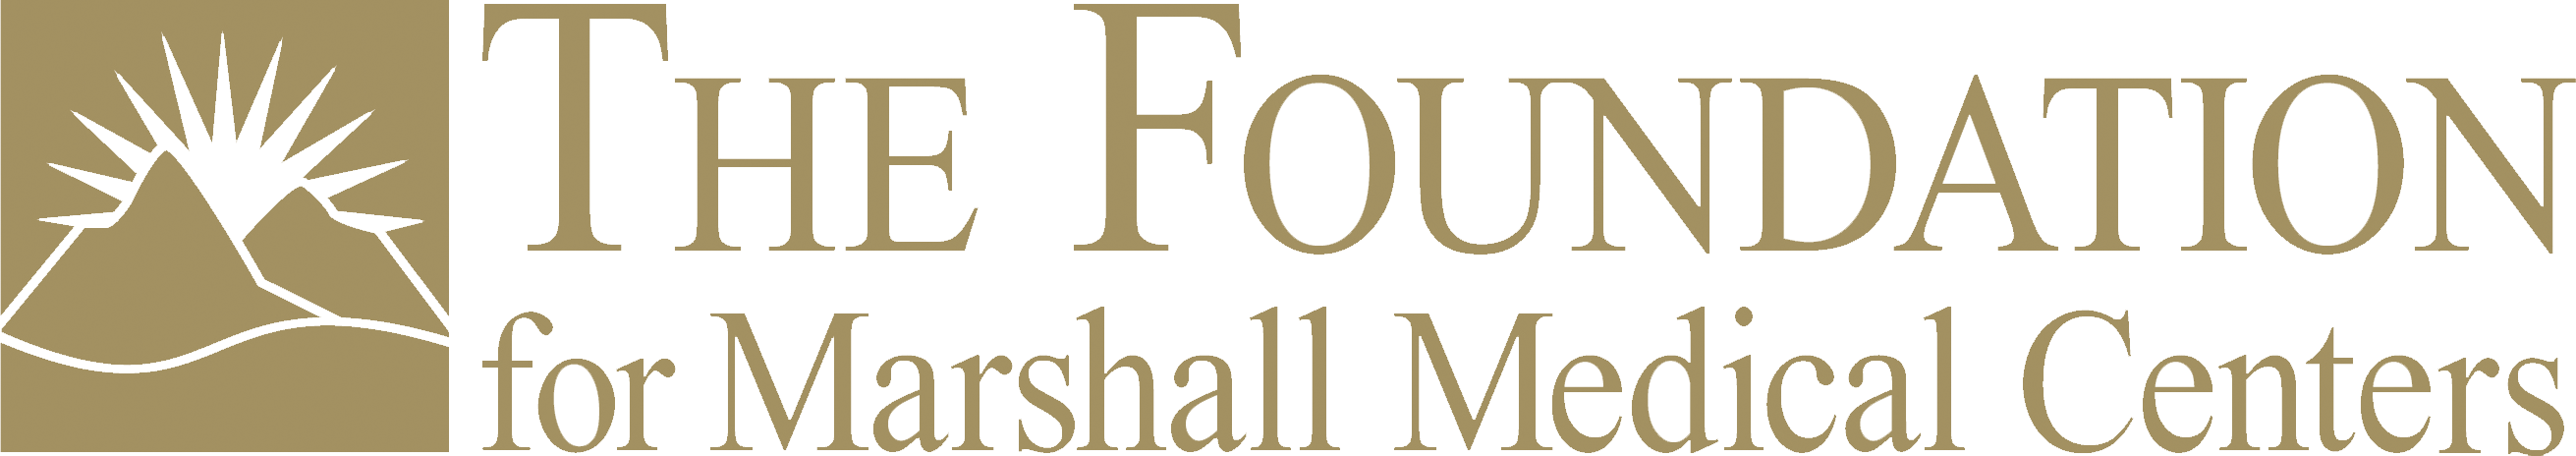 The Foundation for Marshall Medical Centers